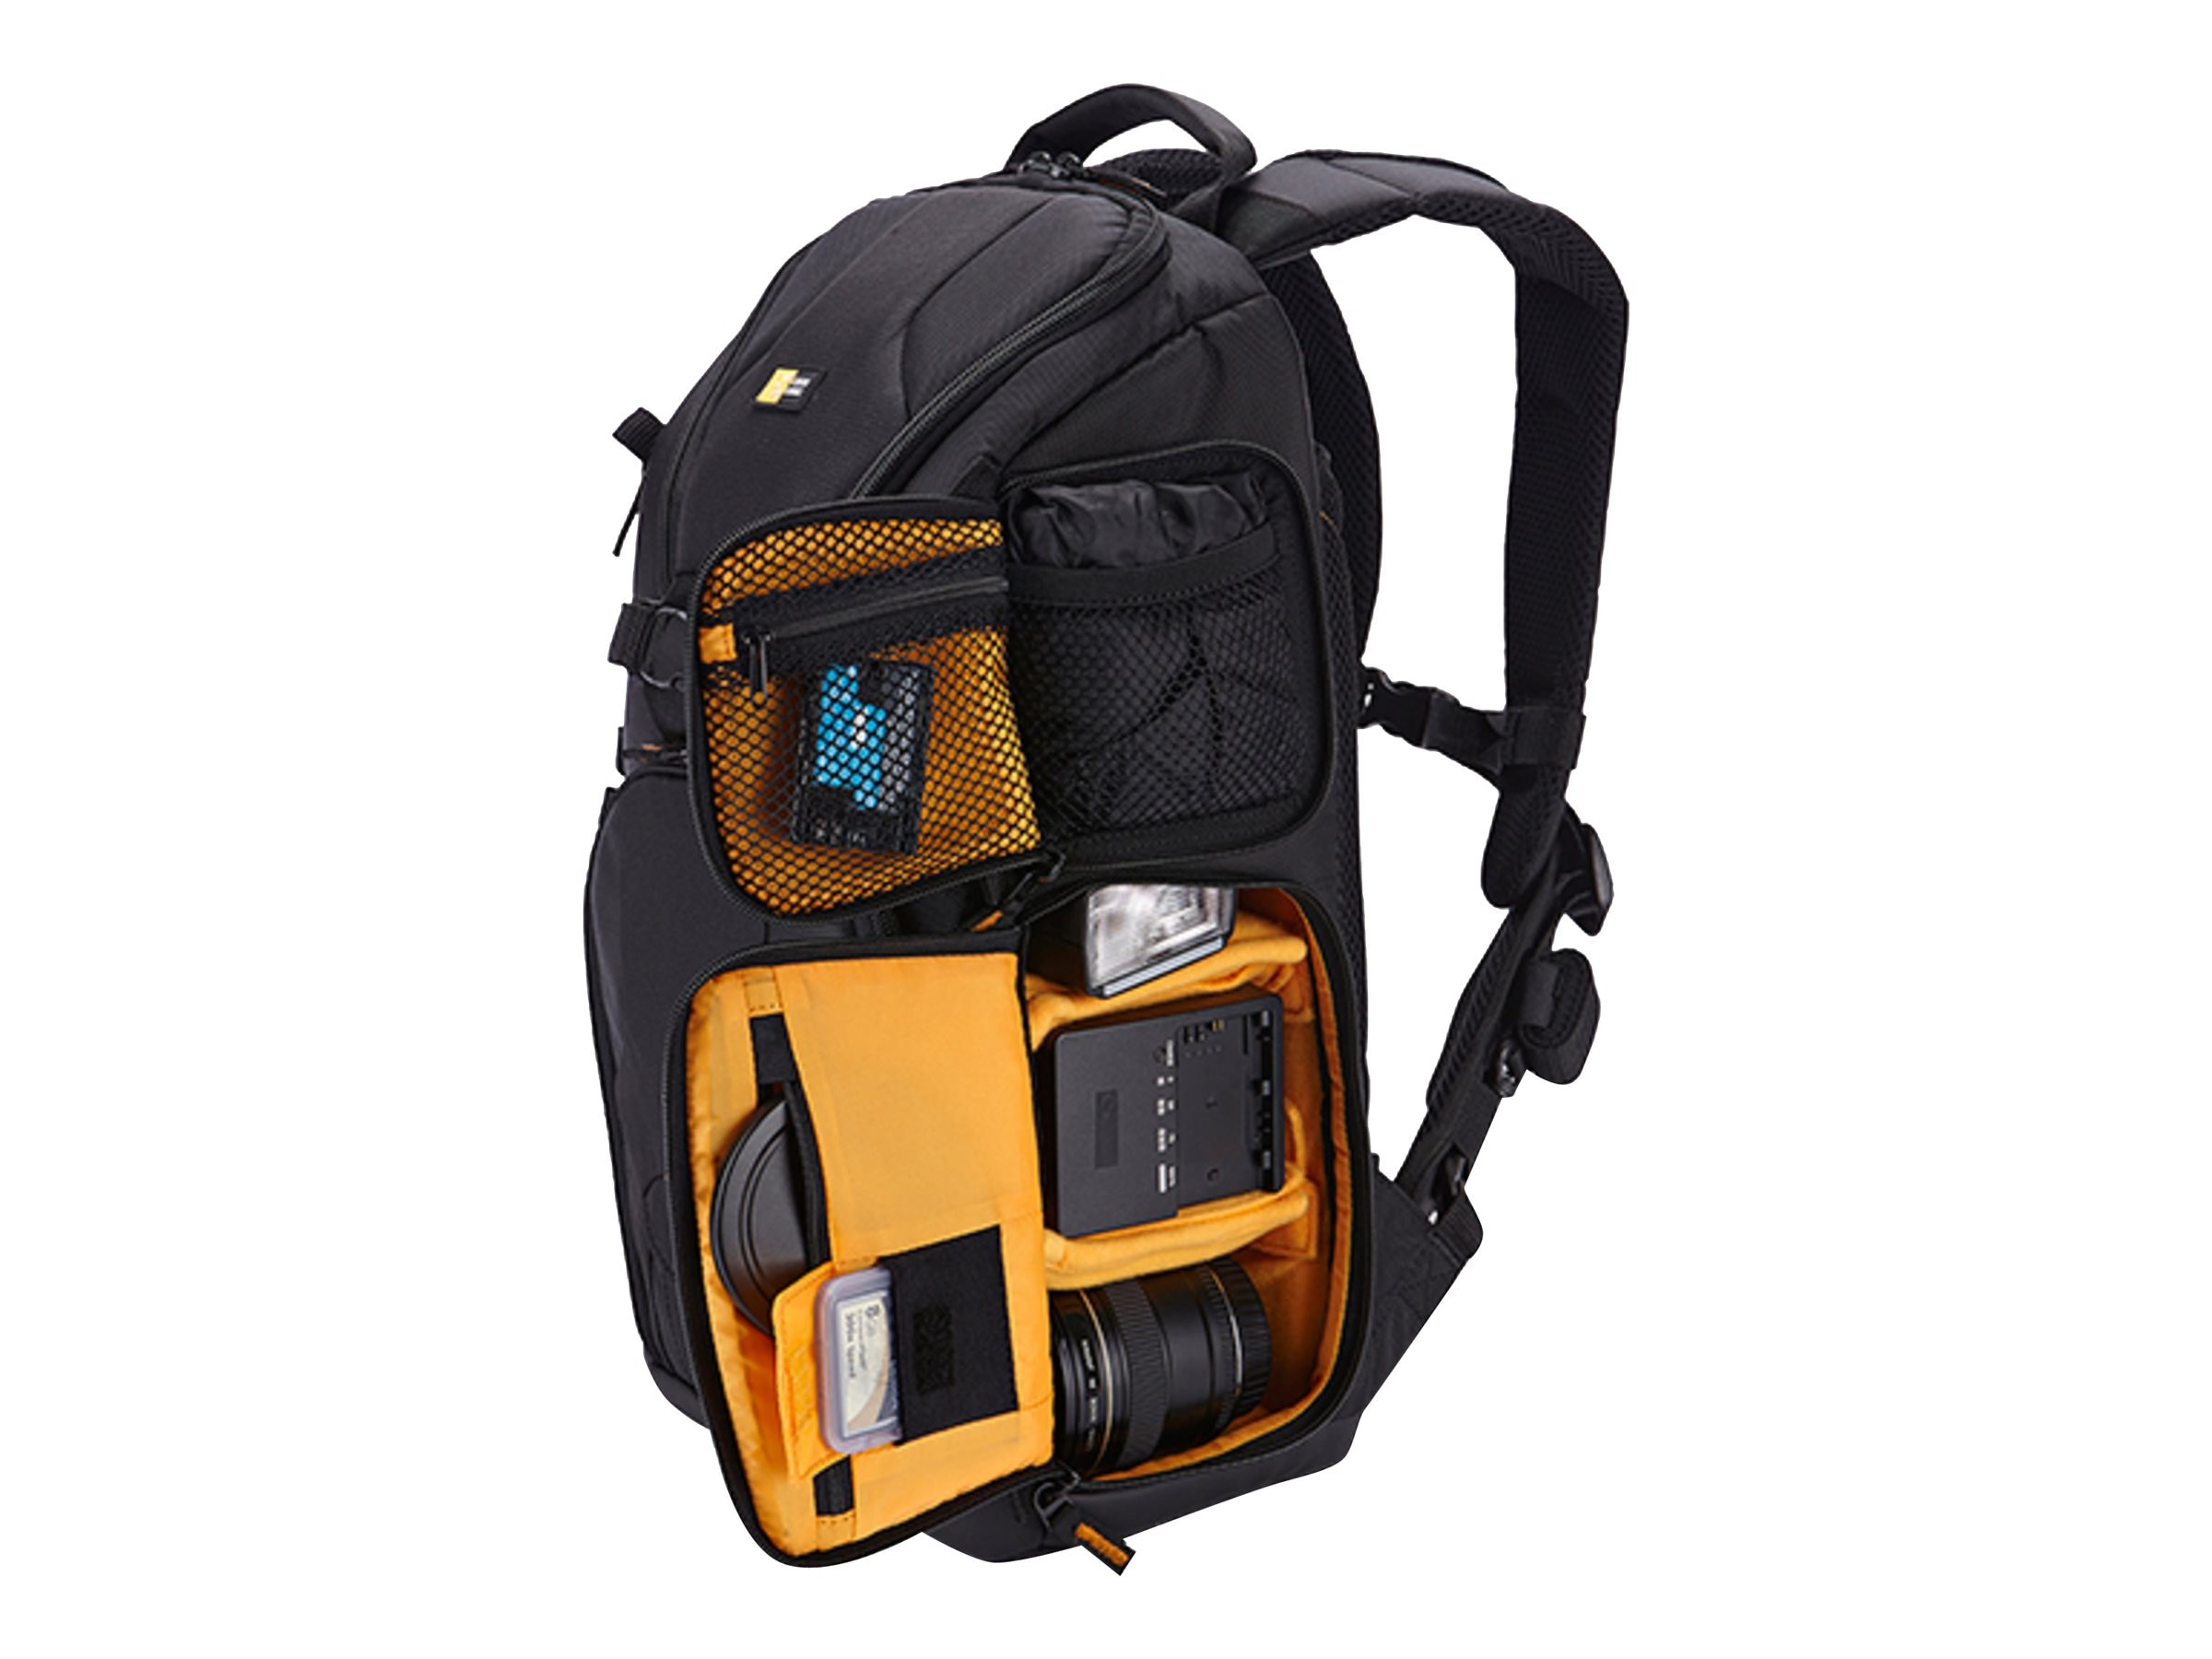 Case Logic Kilowatt Camera Sling Medium Backpack, Black, KSB-101BLACK, 18661499, Carrying Cases - Camera/Camcorder